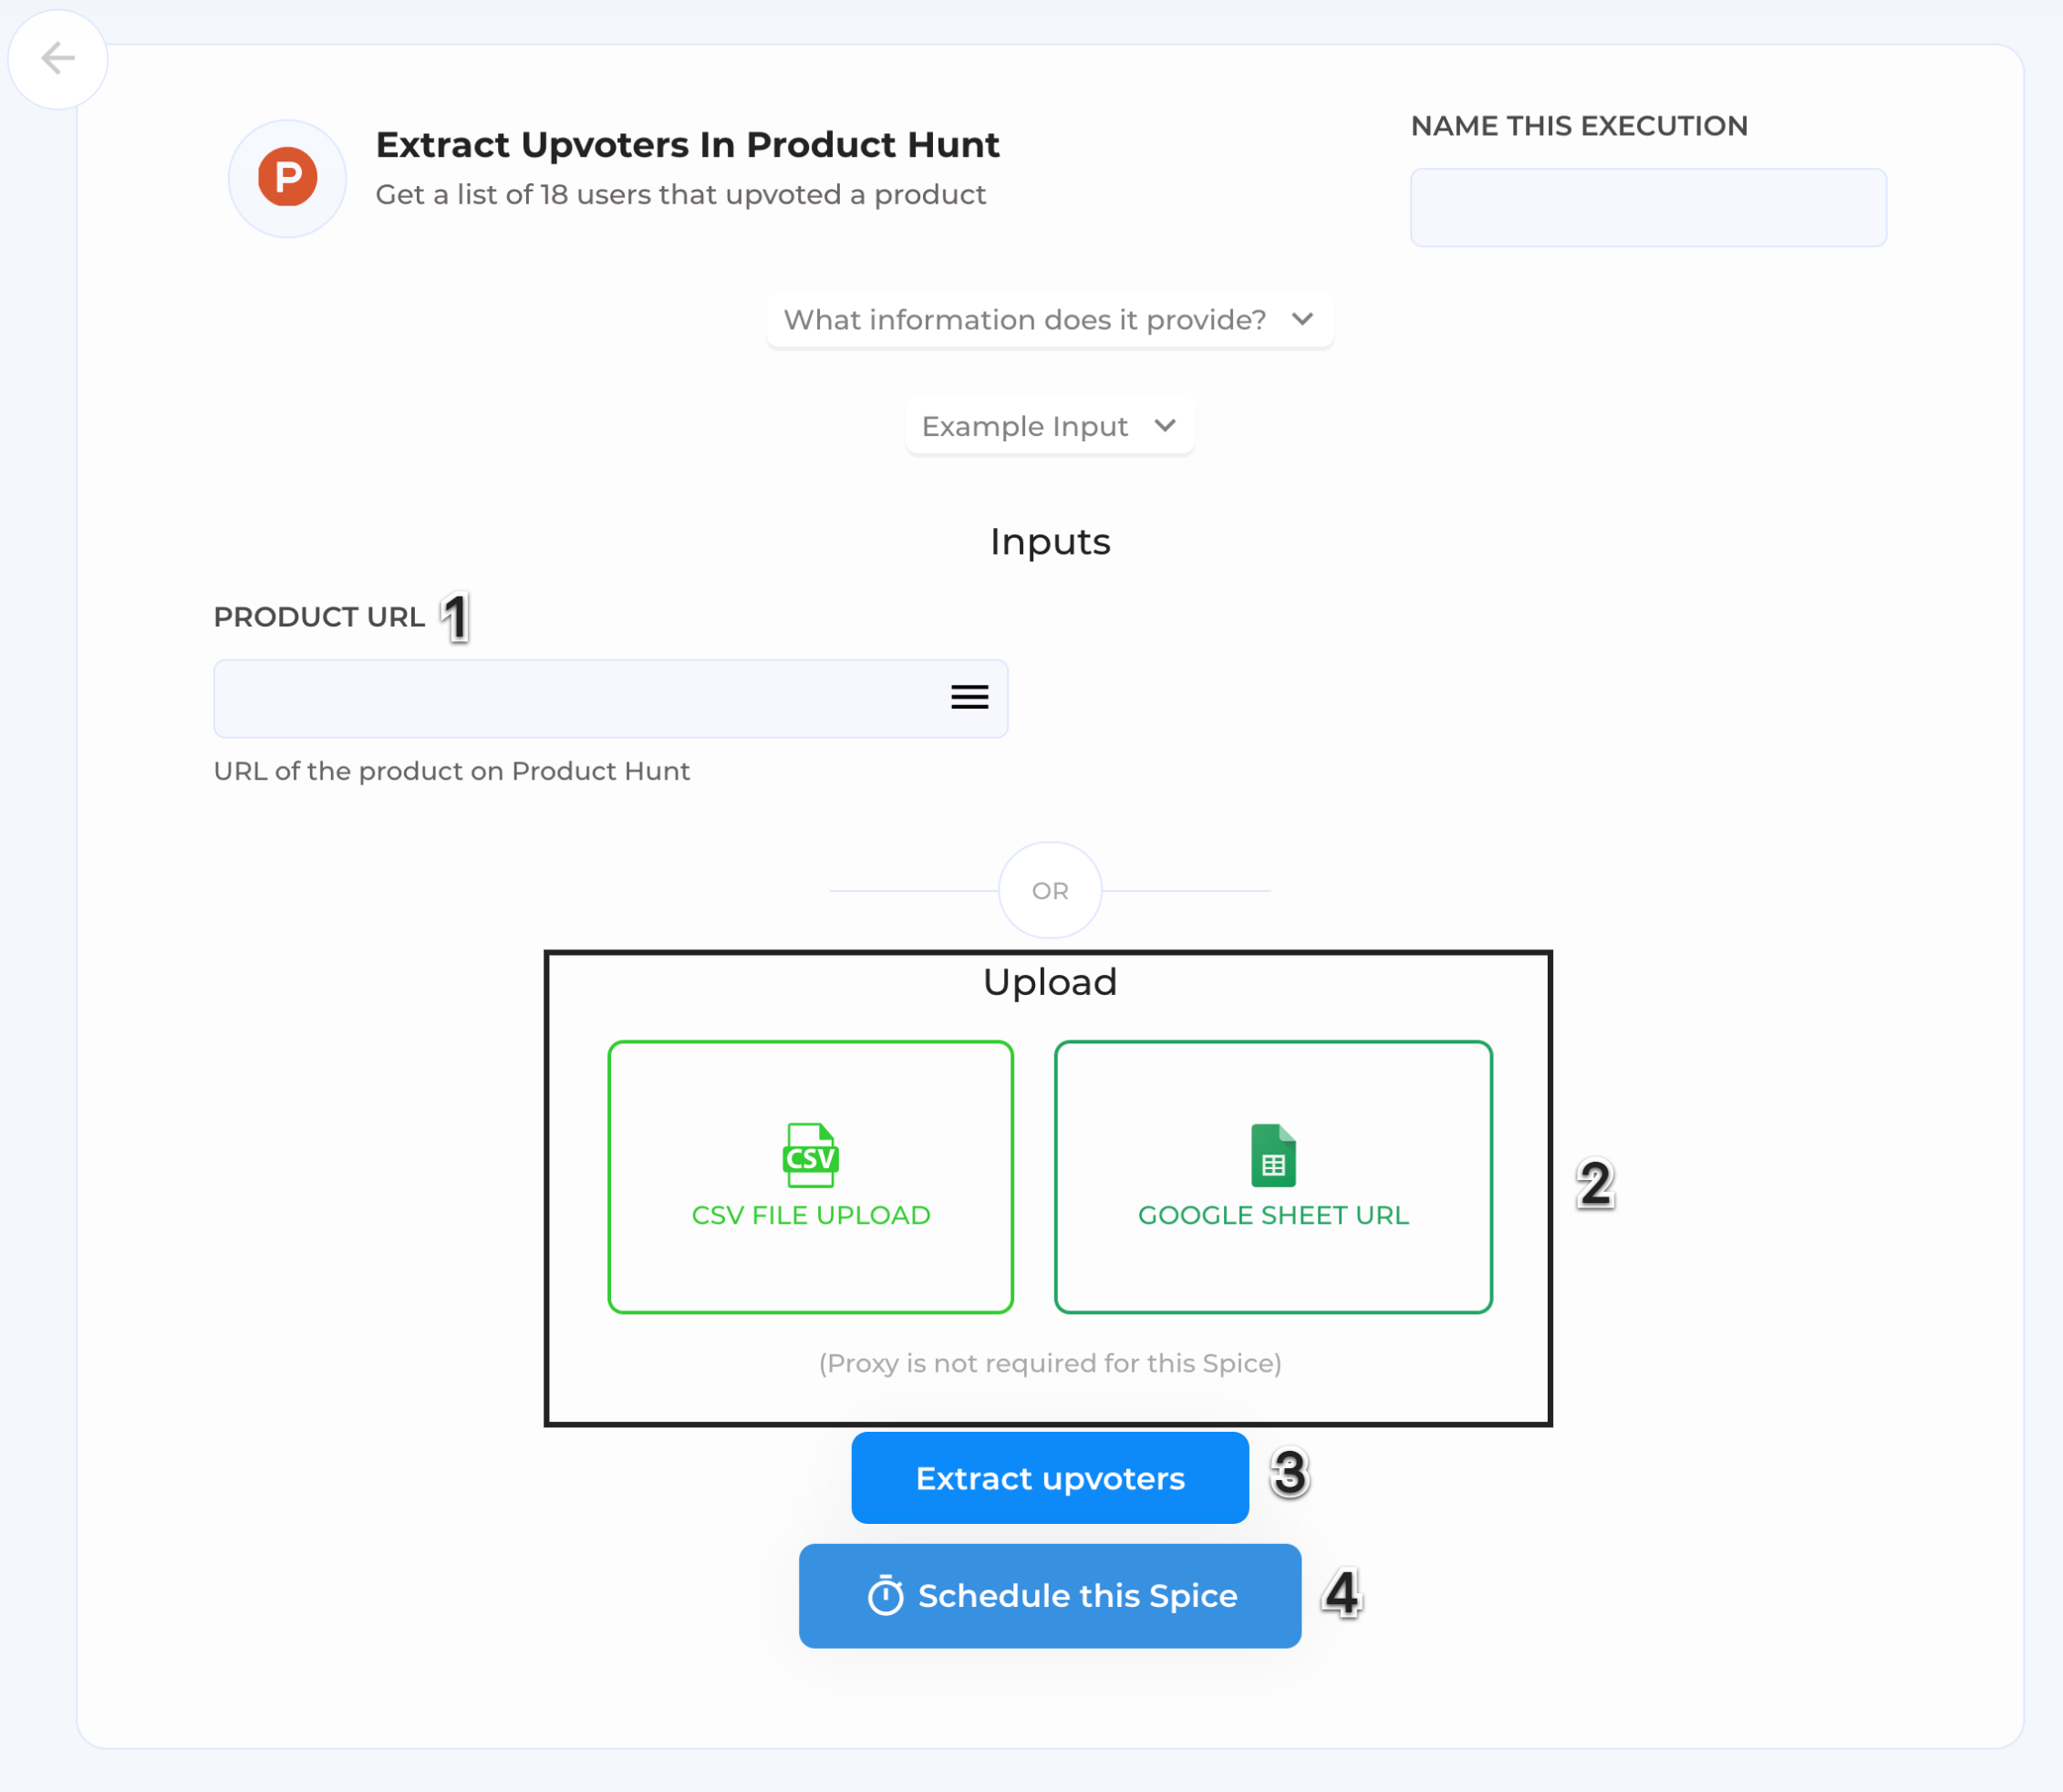 Extract-upvoters-in-Product-Hunt-Automation-page.